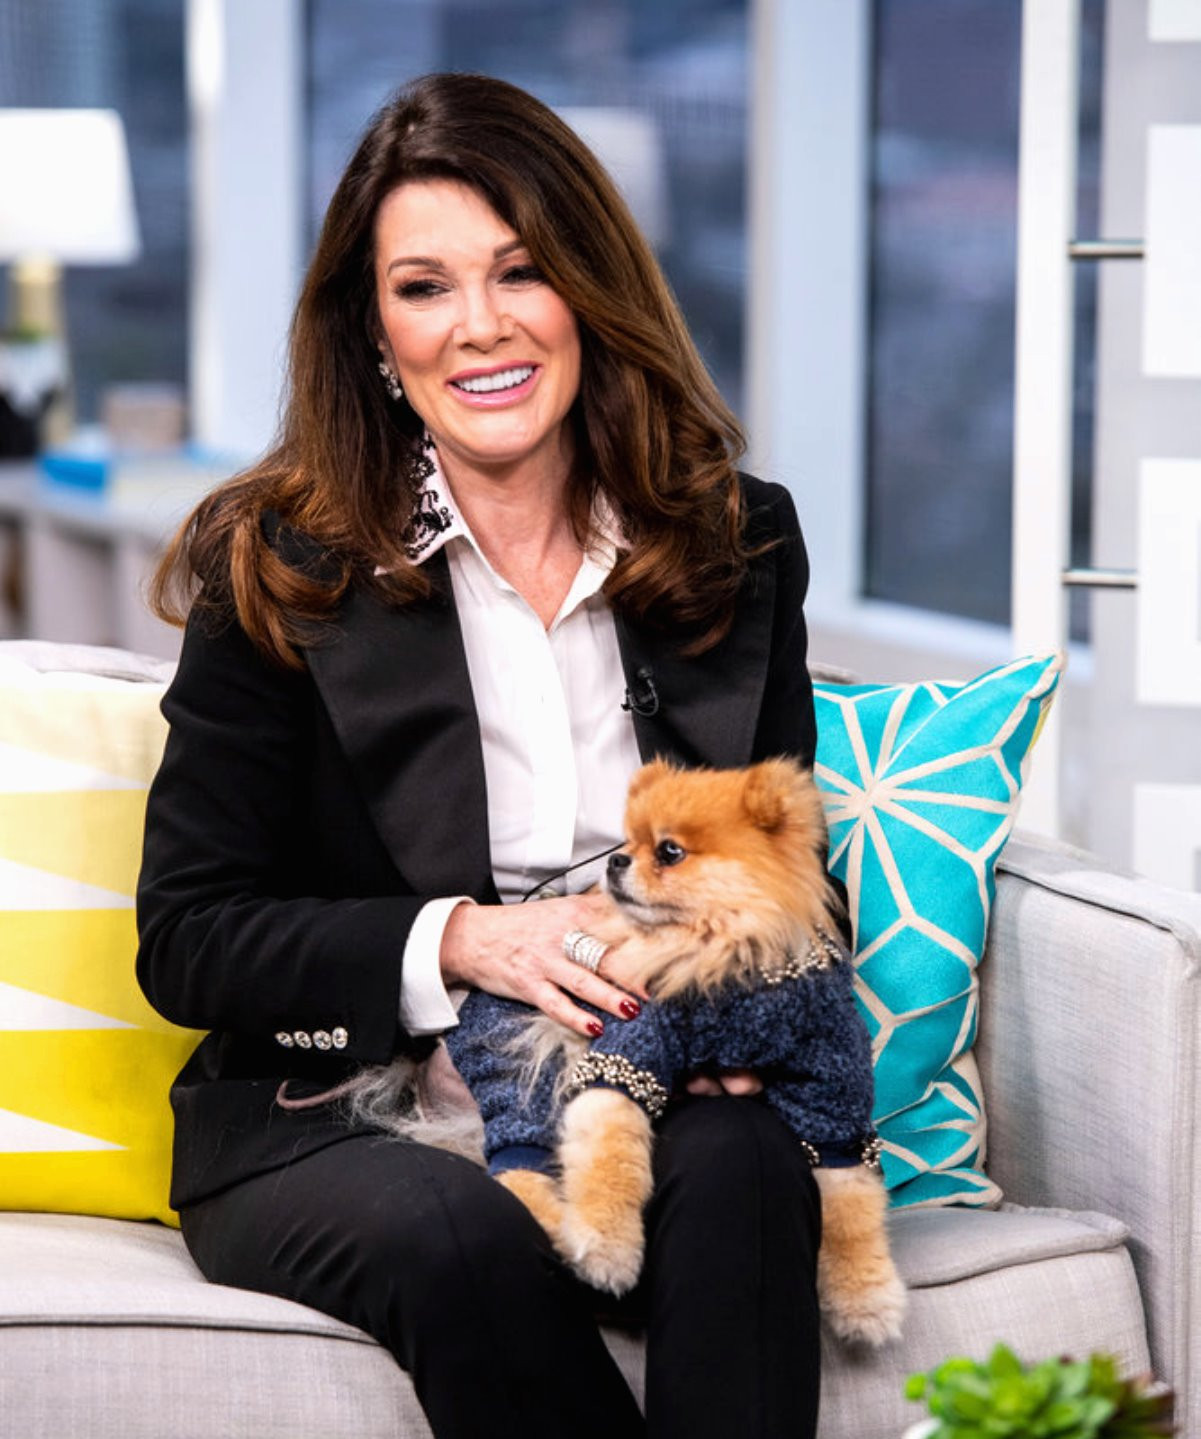 """Lisa Vanderpump Is """"Fed Up"""" with RHOBH Cast Targeting Her & Refusing to Discuss Their Own Issues, Reveals Who She Still Talks To"""